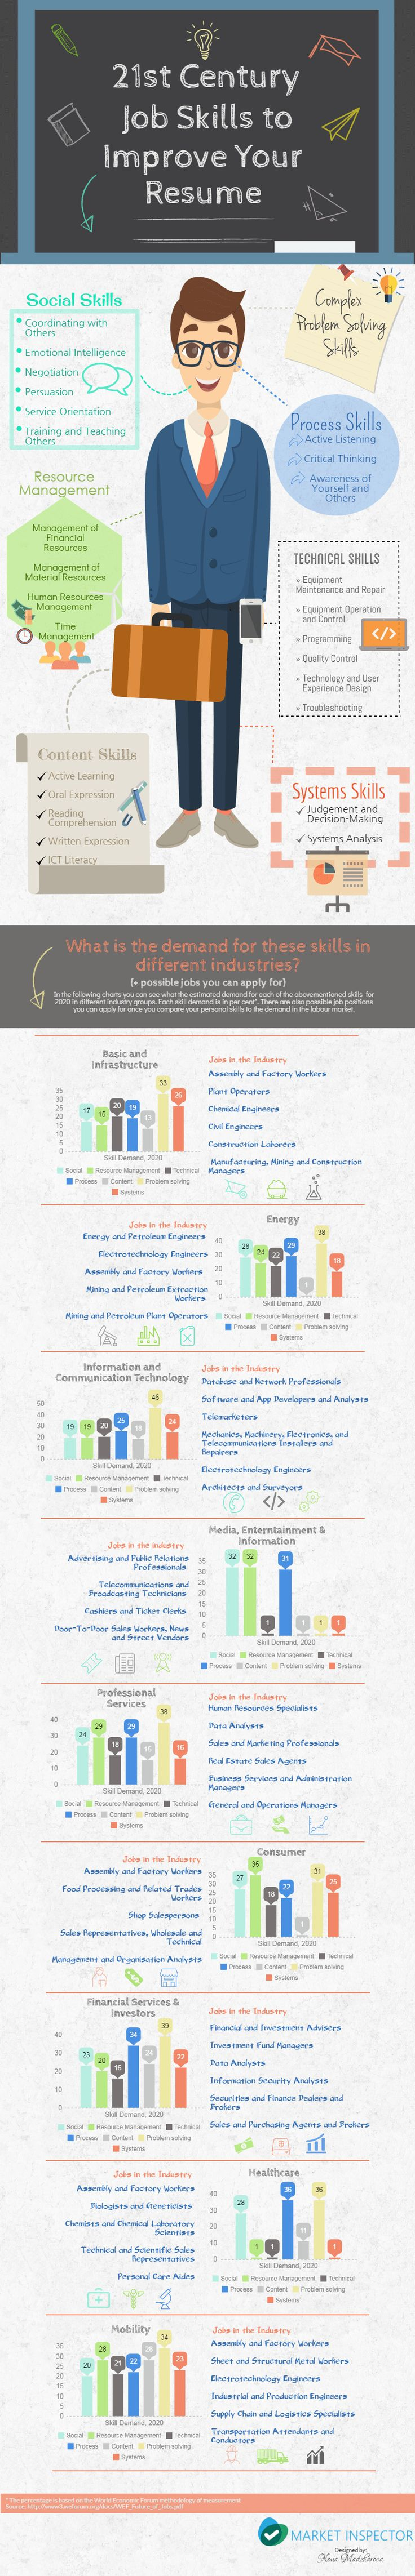 infographic 21st Century Job Skills To Improve